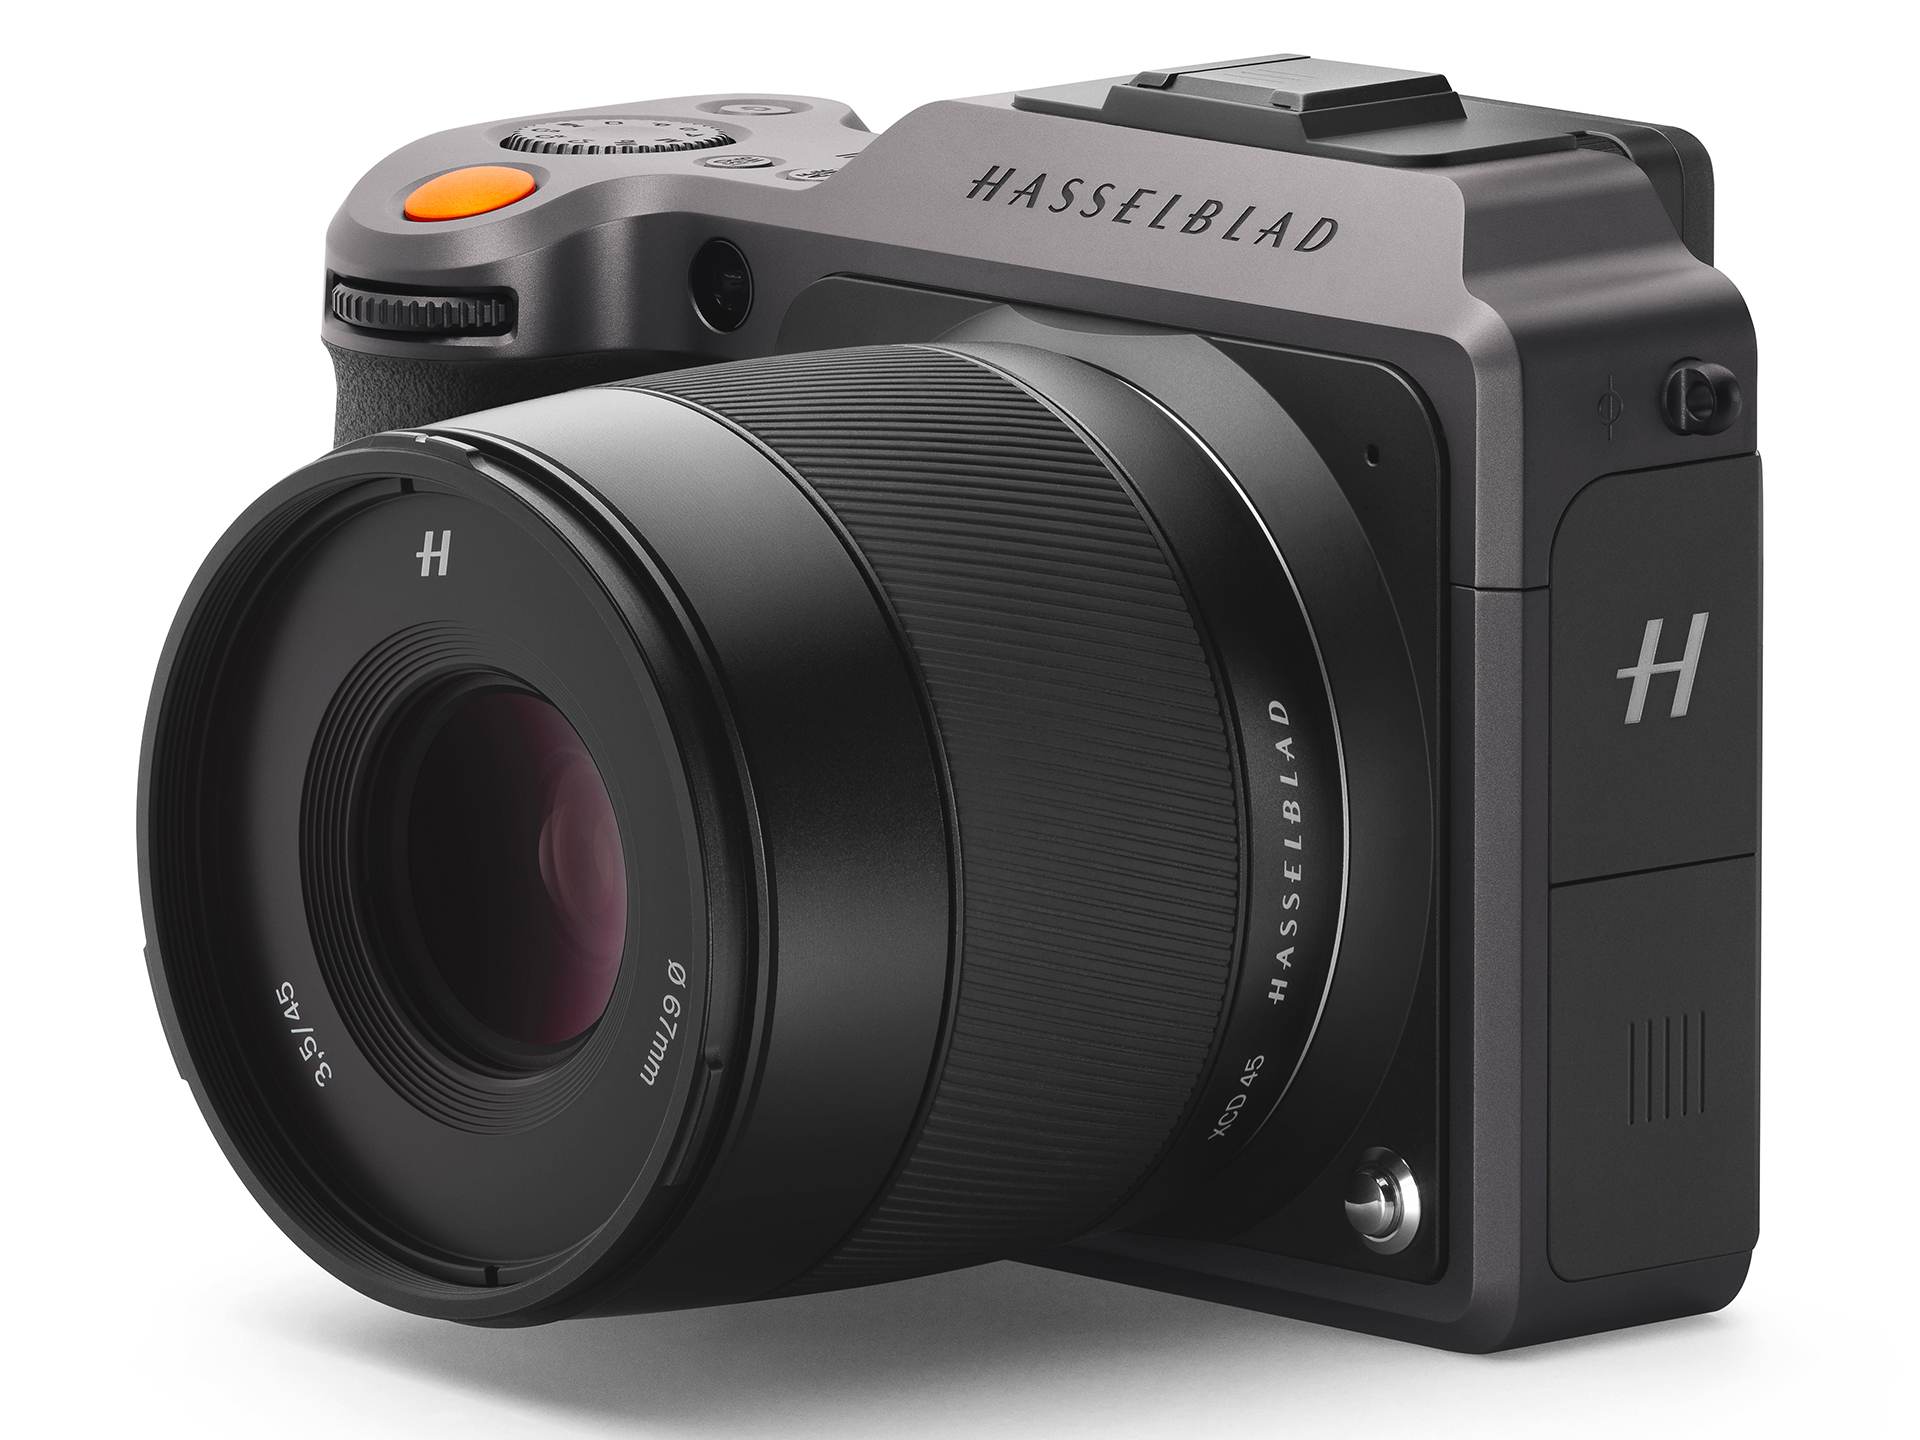 Hasselblad X1D II 50C Mirrorless Camera and XCD 35-75mm f/3.5-4.5 Zoom Lens